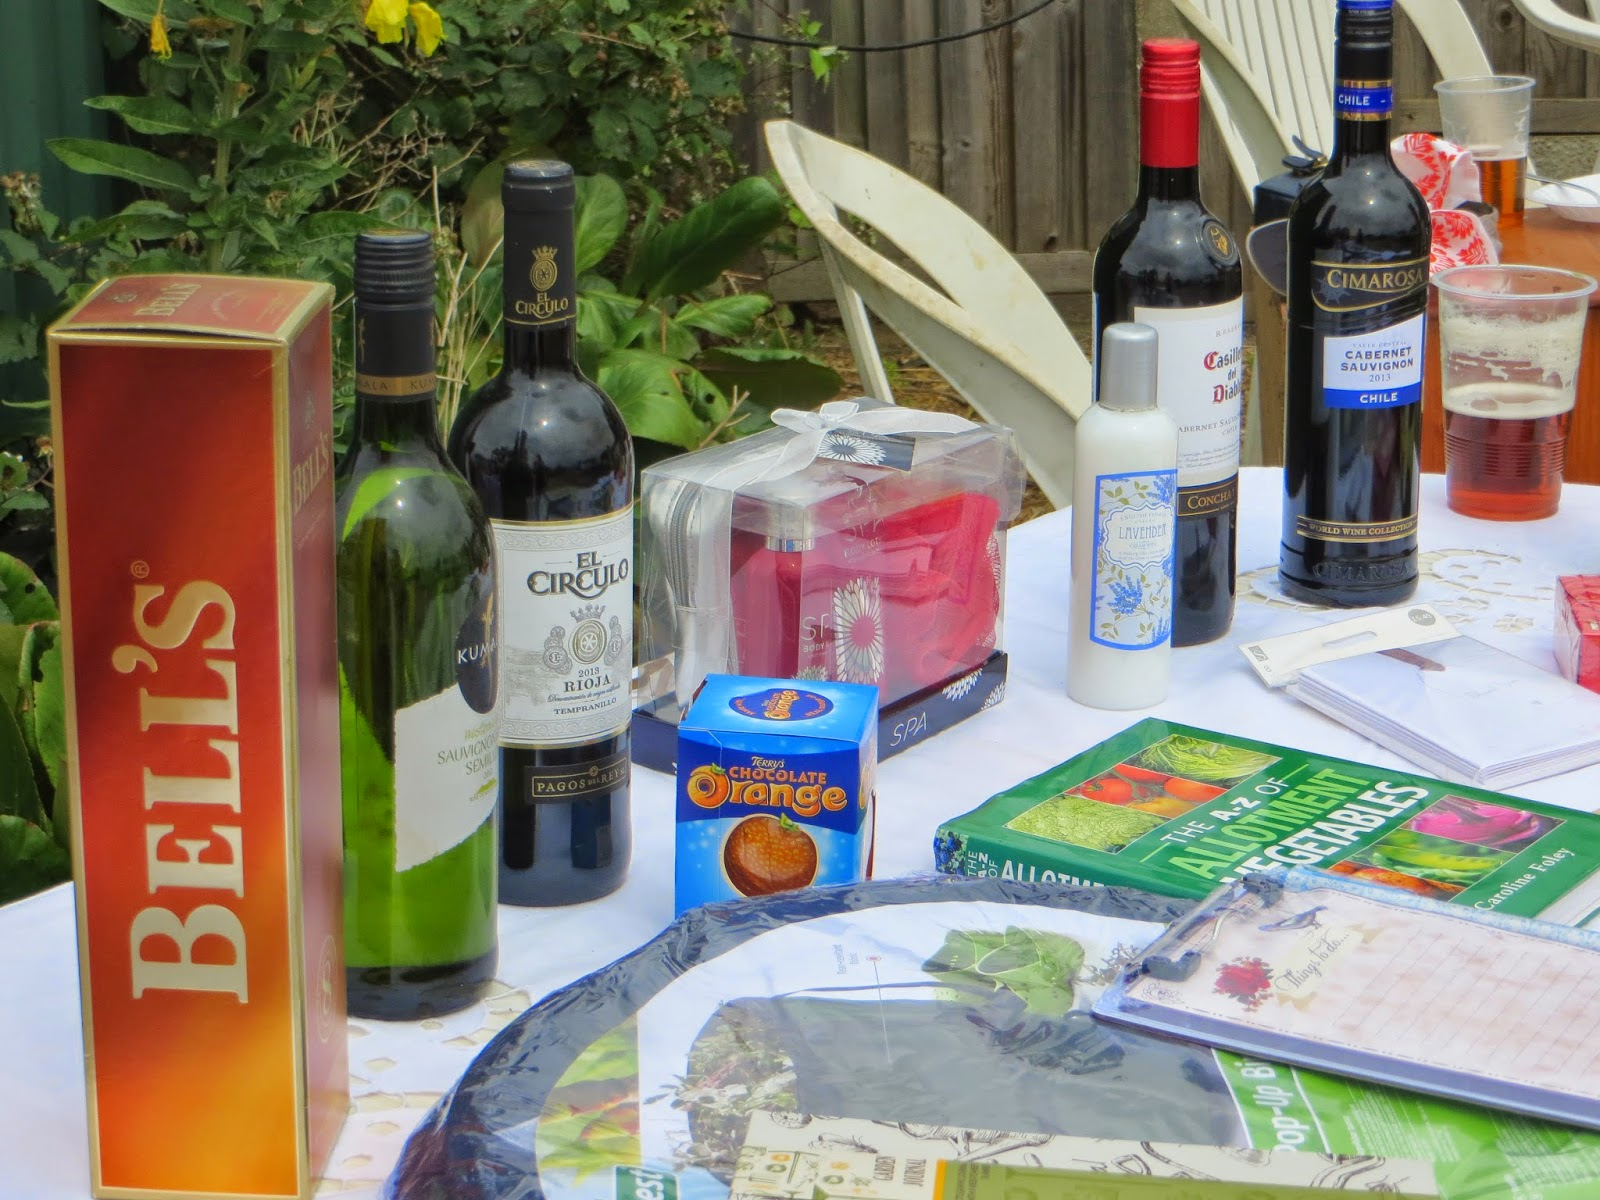 And then there was the raffle with a good selection of prizes.